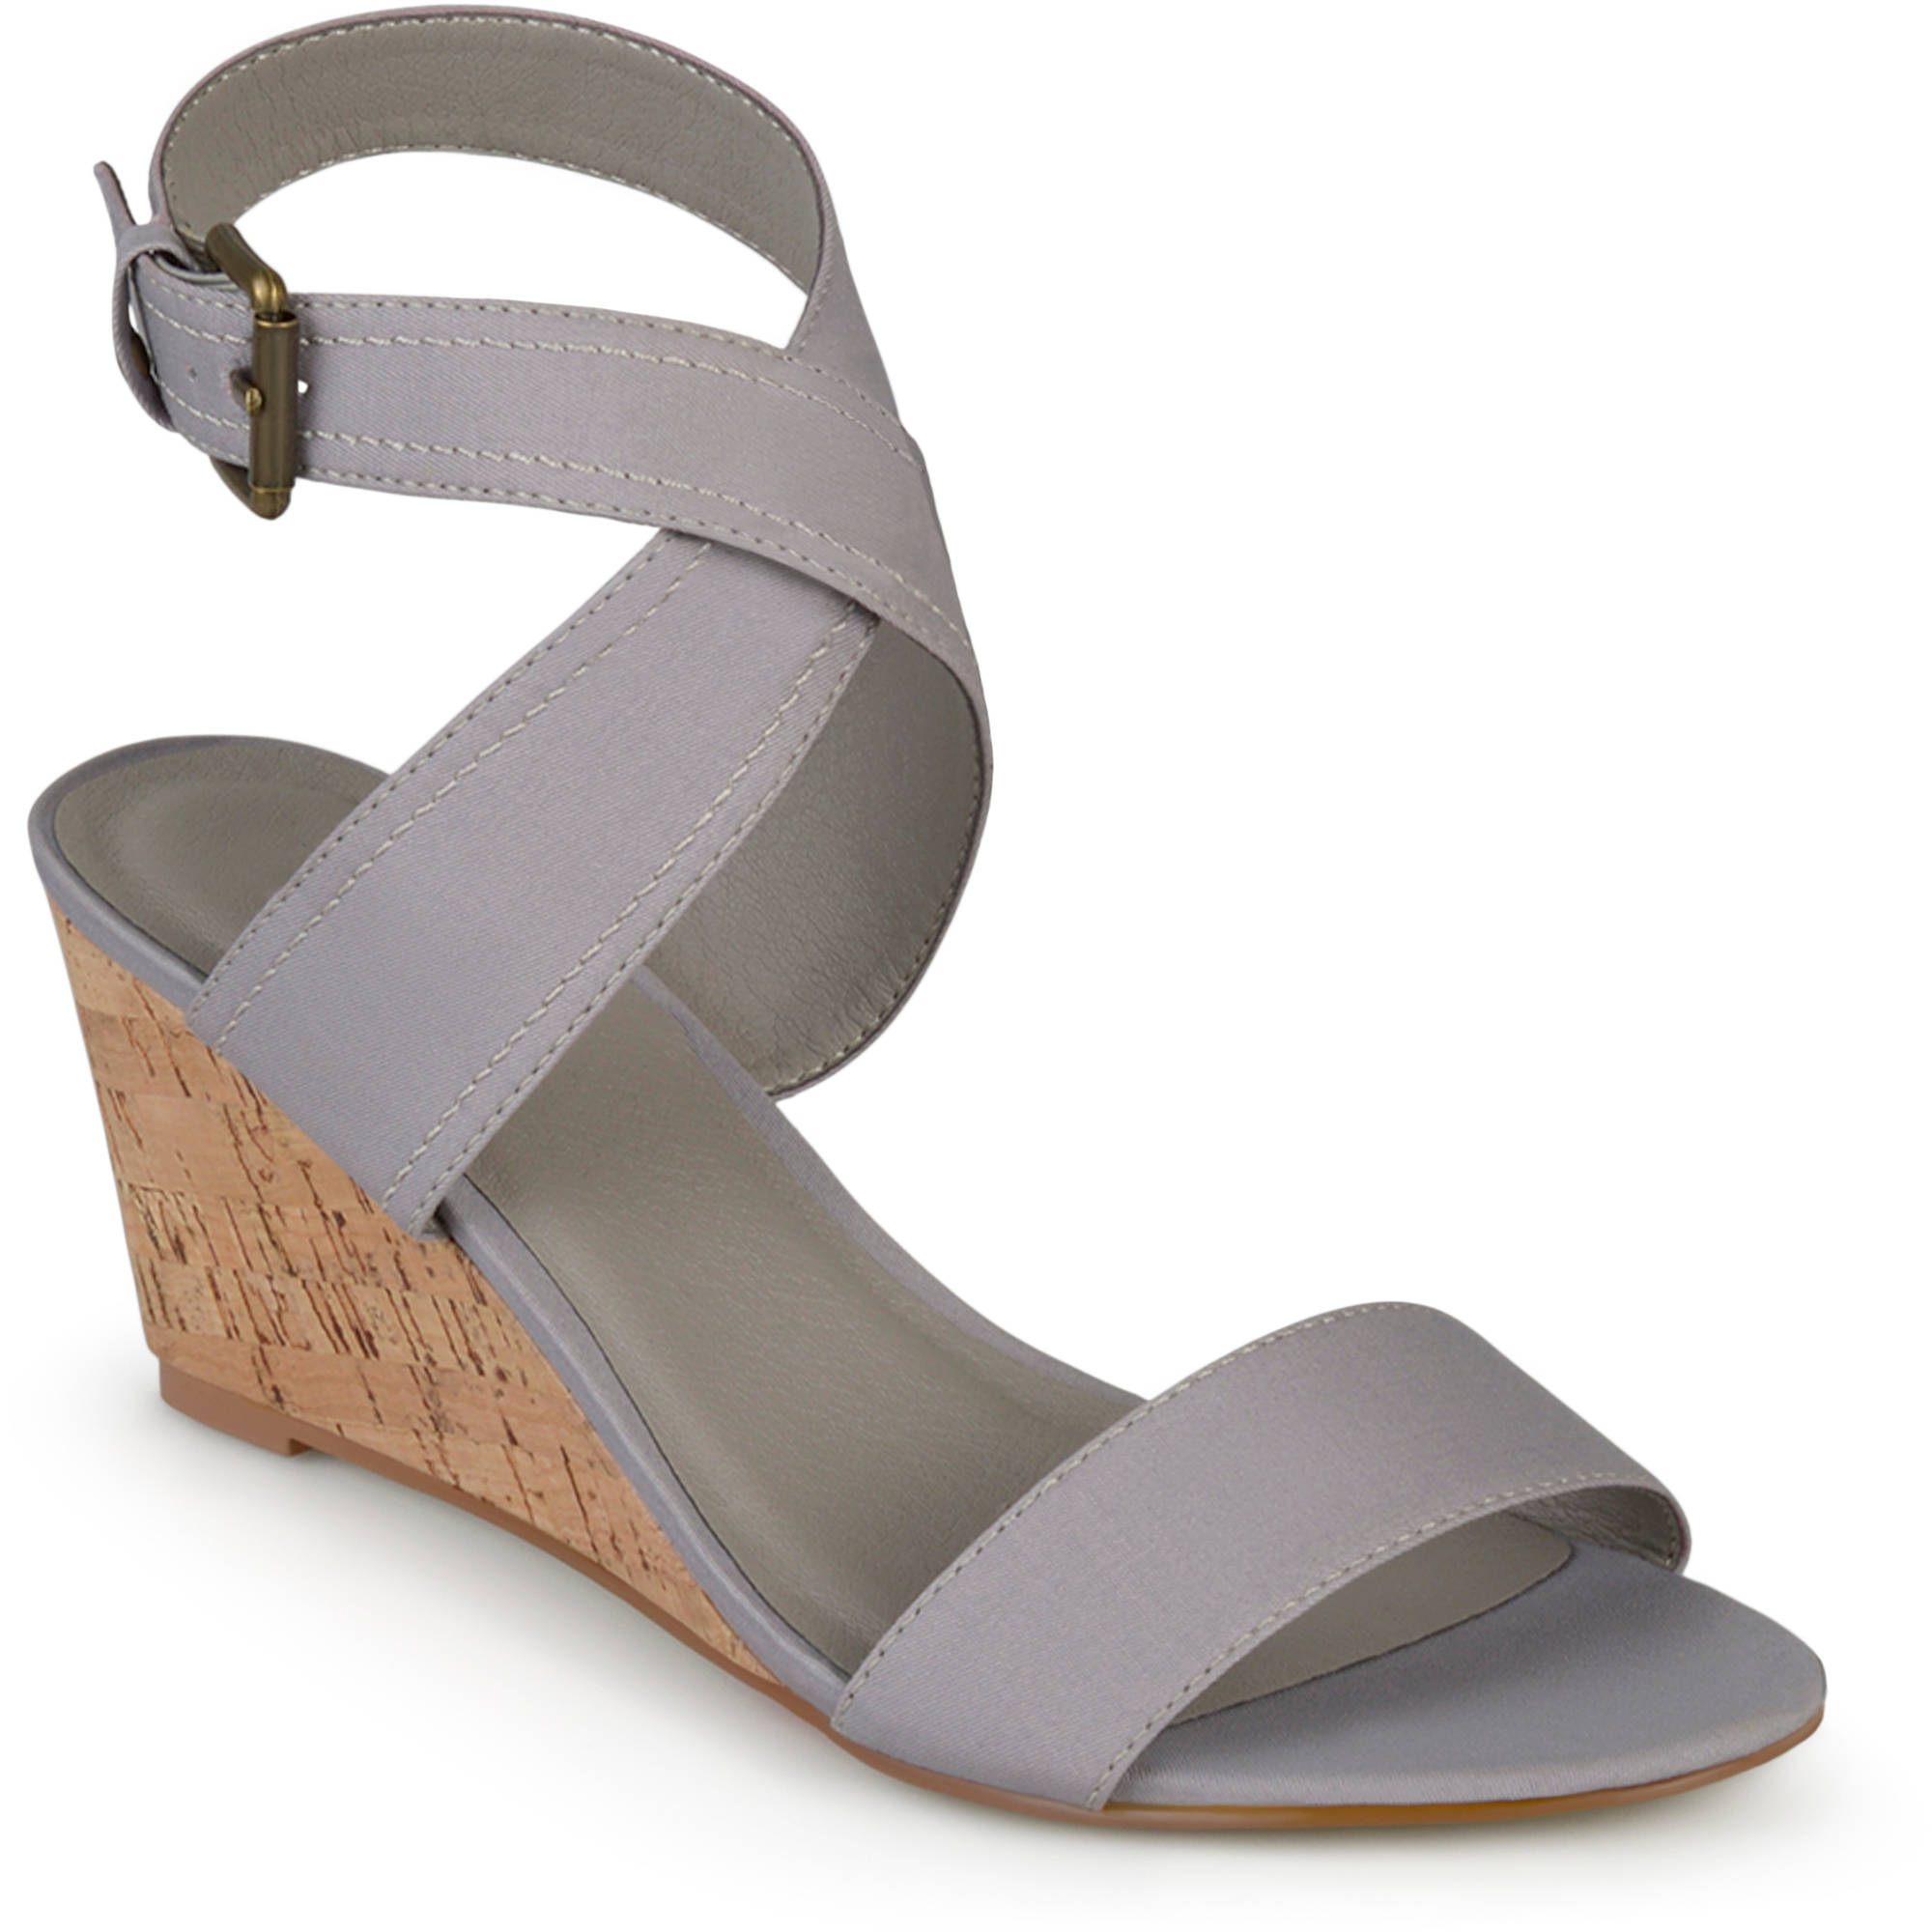 Brinley Co. Womens Ankle Strap Canvas Wedges